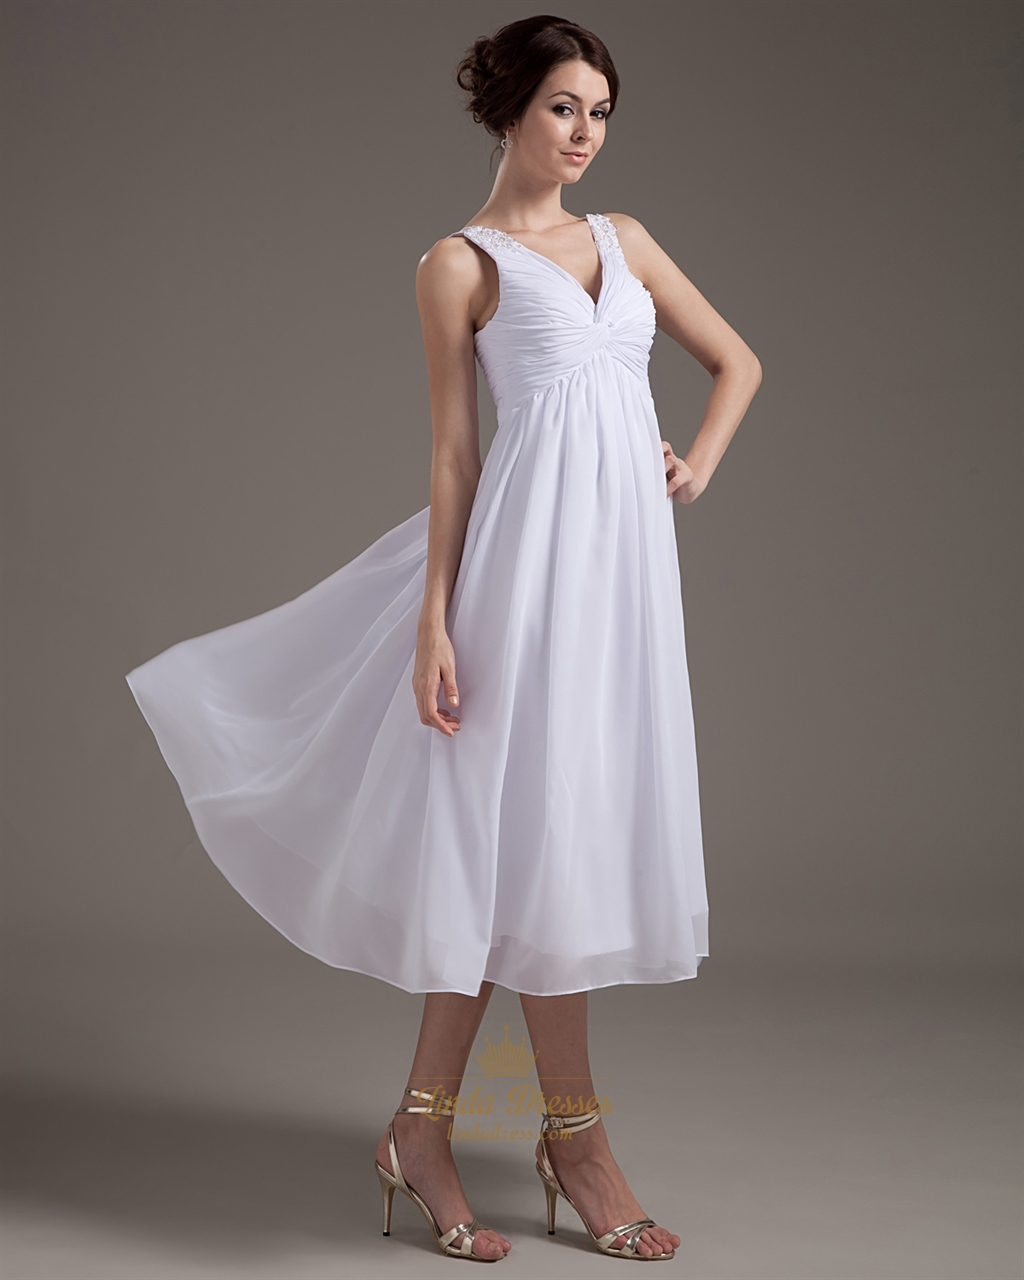 White V Neck Tea Length Chiffon Wedding Dress With Beaded